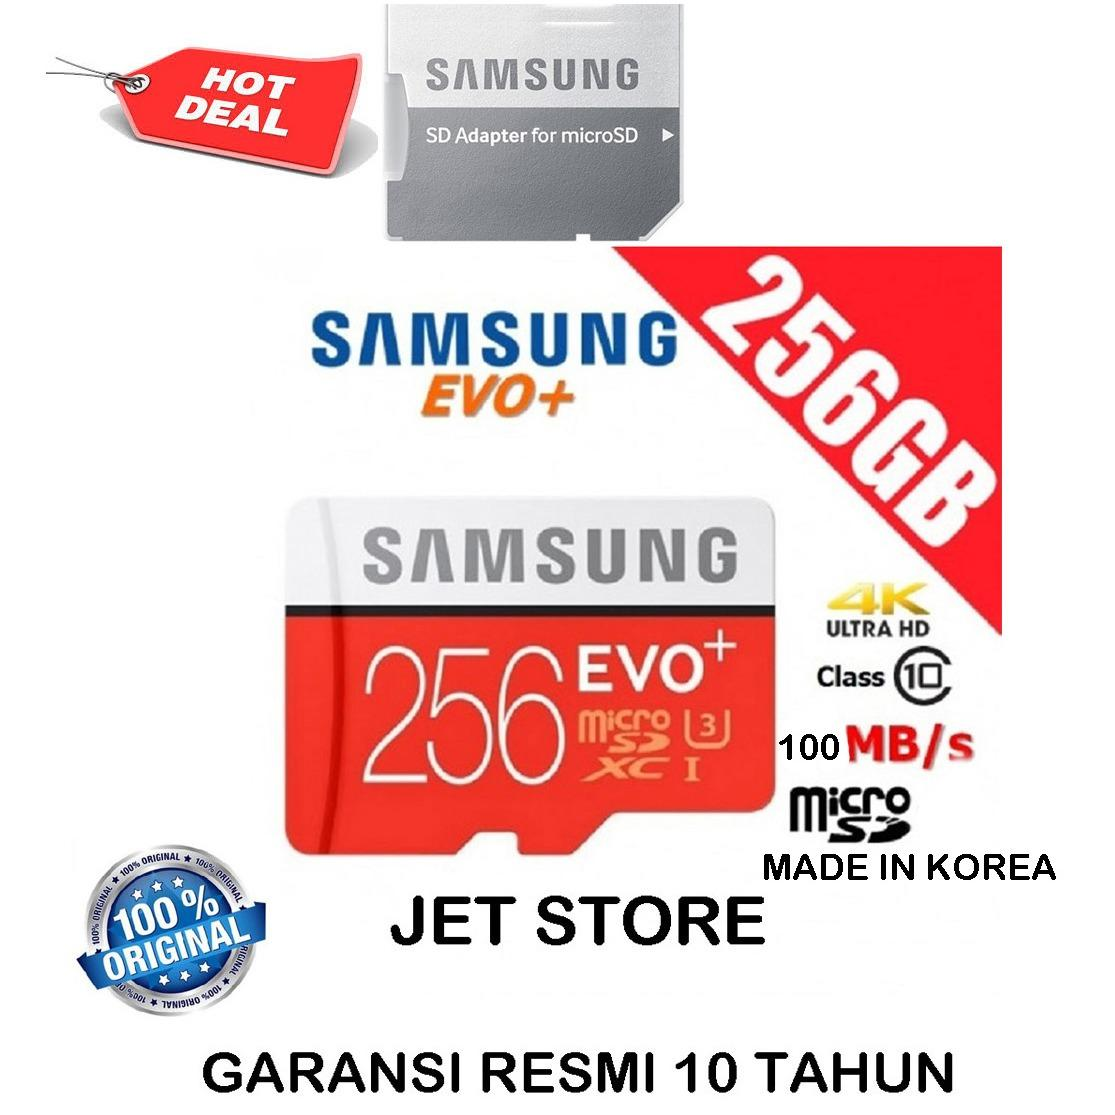 Samsung Memory Card MicroSDXC Evo Plus 256GB / 100MB/s with Adapter - Merah